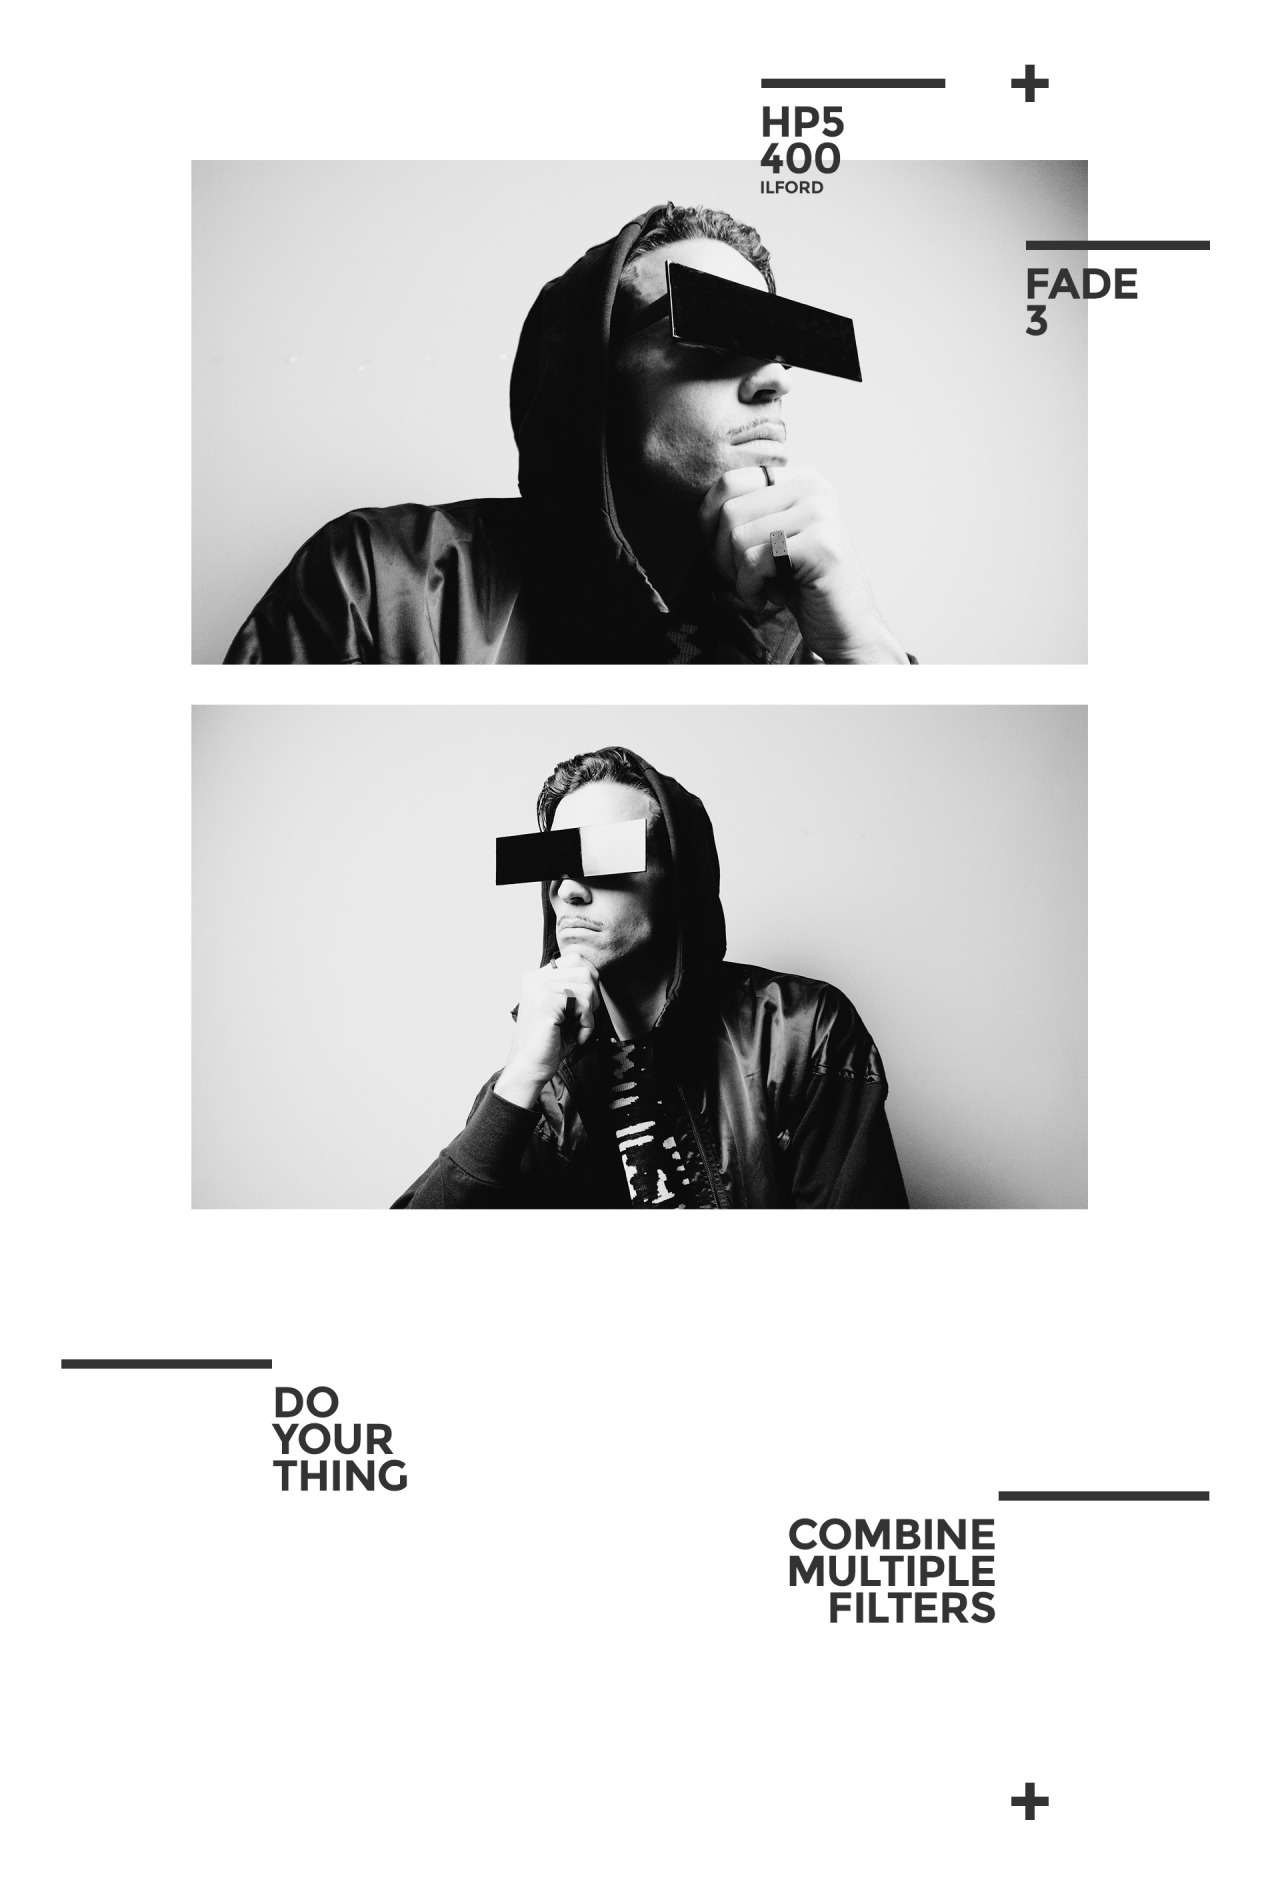 _Do your thing.Combine multiple filters.+